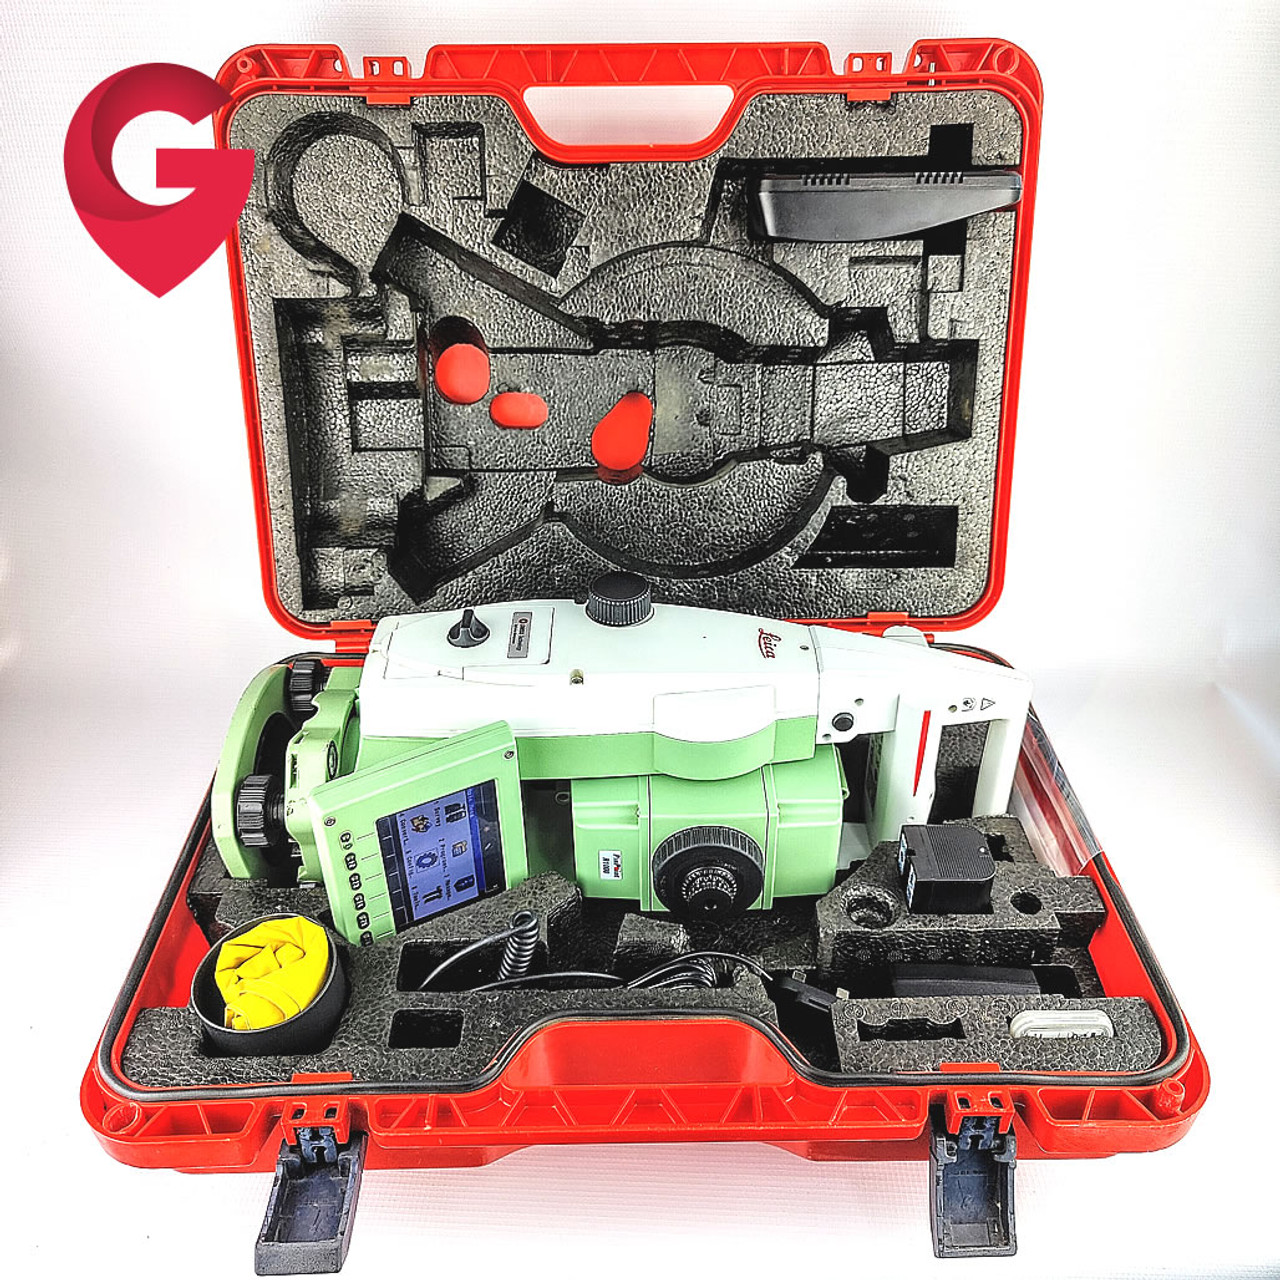 Leica TCRP1205+ R1000 Robotic Total Station & CS15 - Used